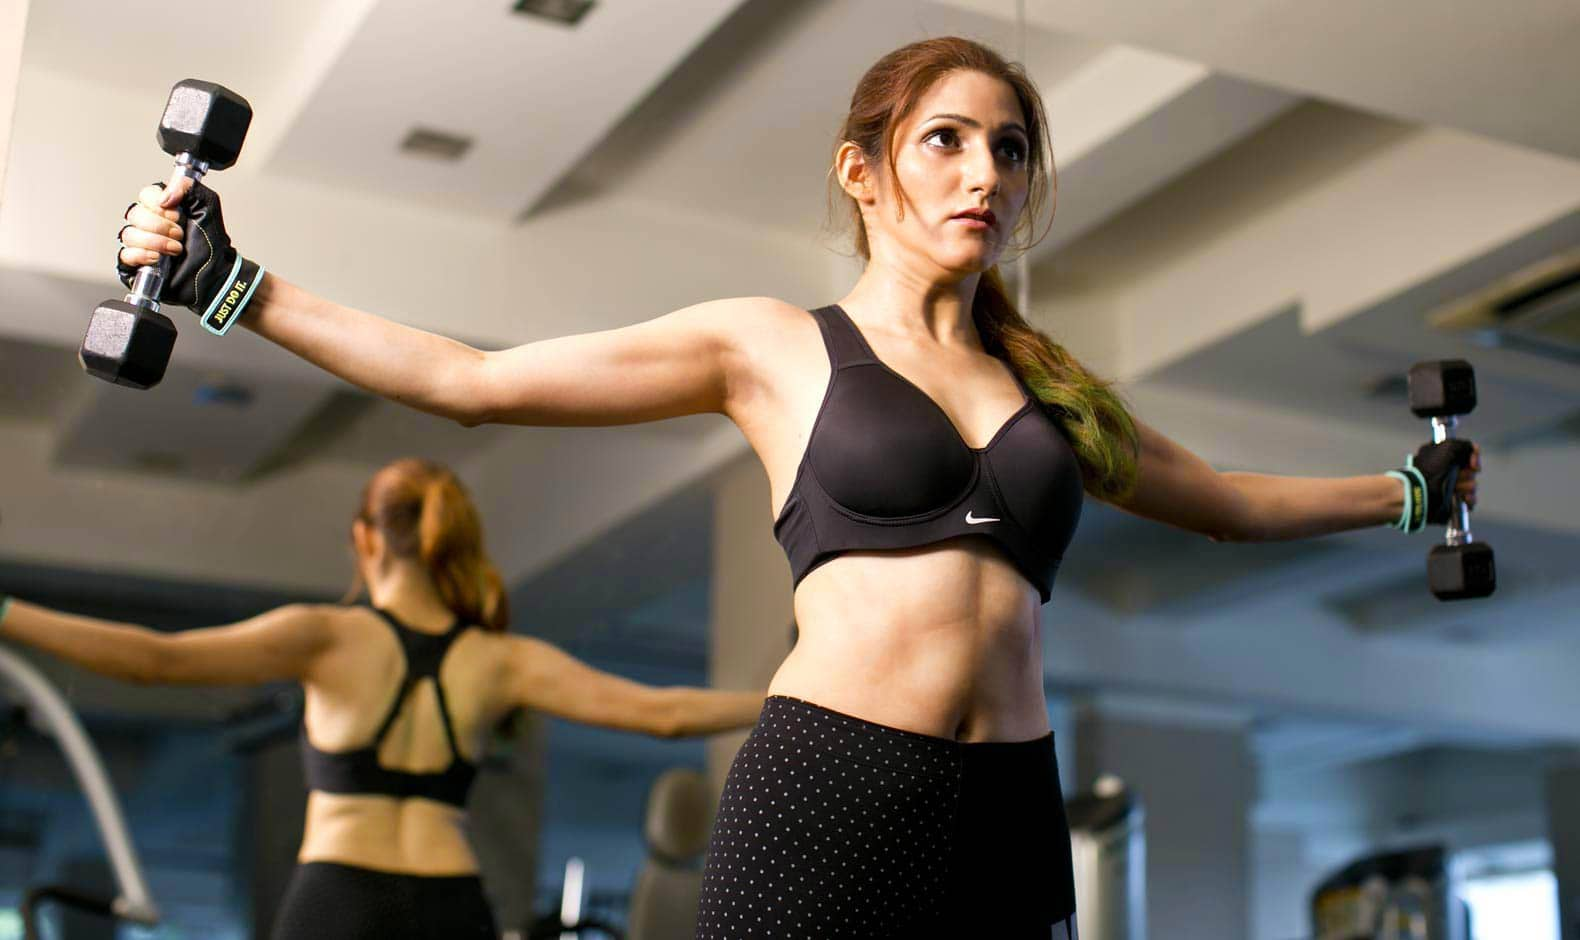 nike-clothes-work-out-weight-training-fitness-outfit-shilpa-ahuja-black-sportsbra